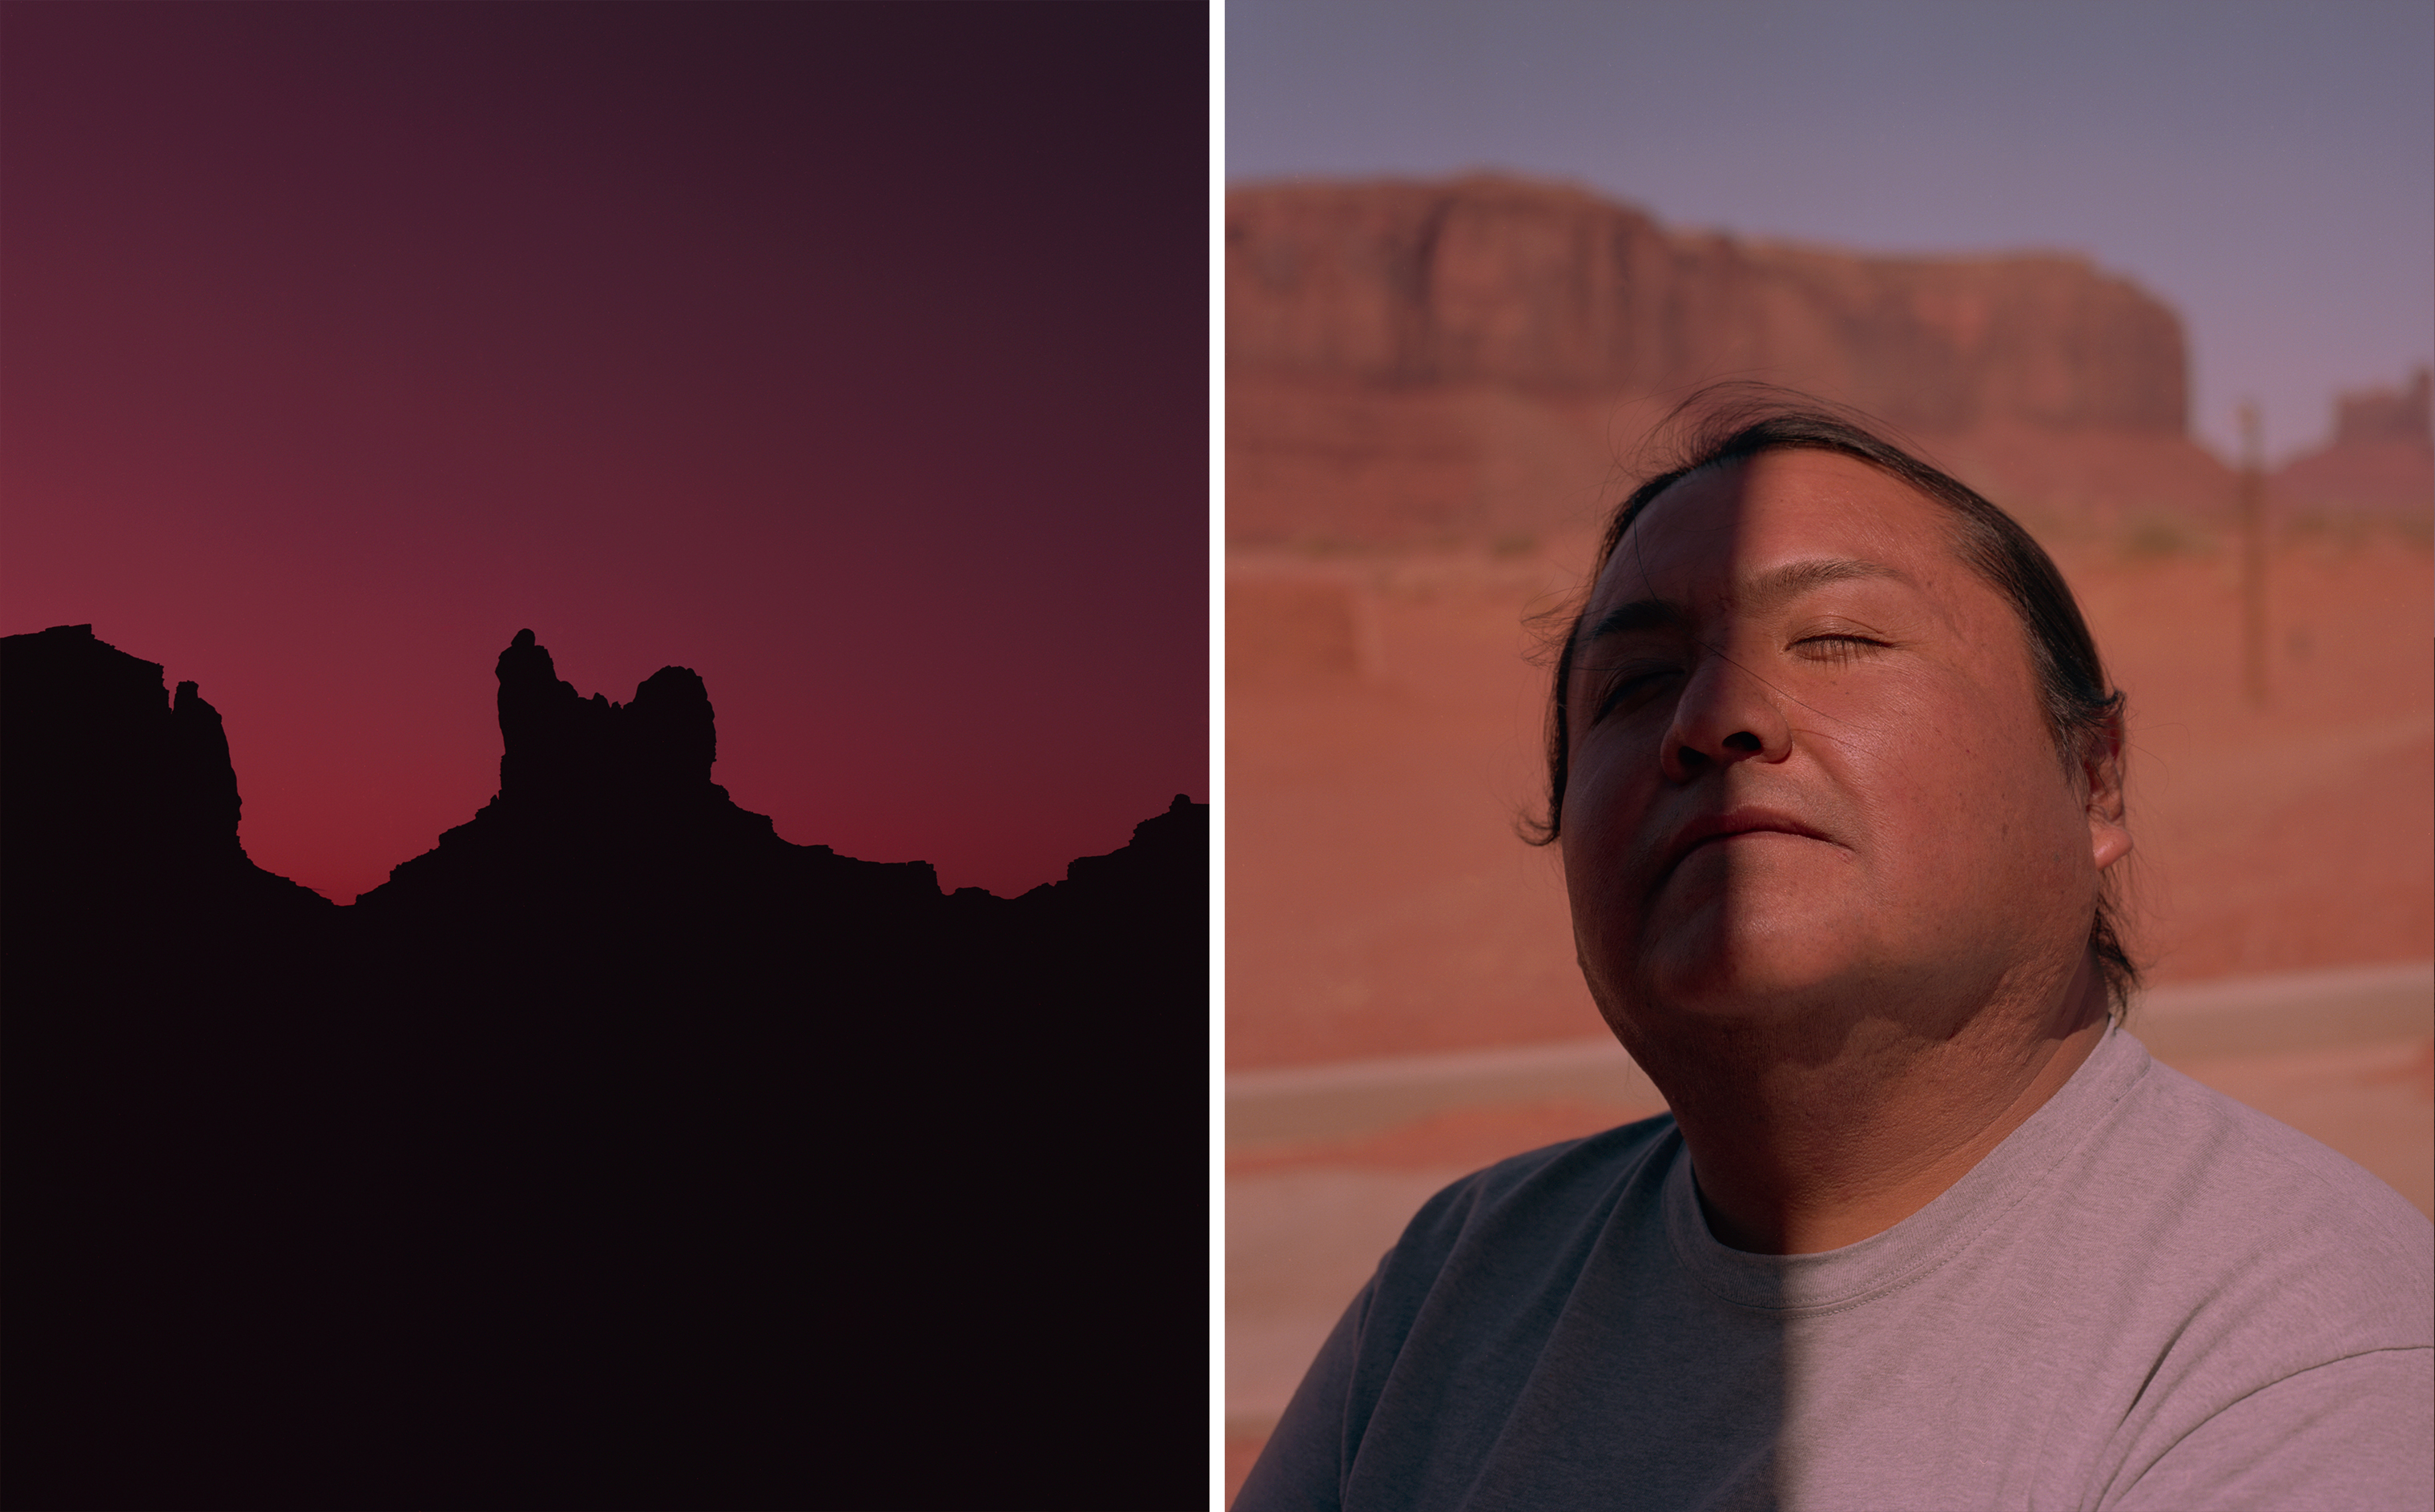 Fernando Cly, 40, is a tour guide in Monument Valley, a tribal park that stretches across the Utah-Arizona border inside the Navajo Nation. Tour guides there are Navajo and make their living from tourism in the area. In arguments over monuments, opponents often highlight economic activity that might be lost from restrictions on logging, mining and other industries. Proponents, in turn, highlight the revenue that will come from new visitors.